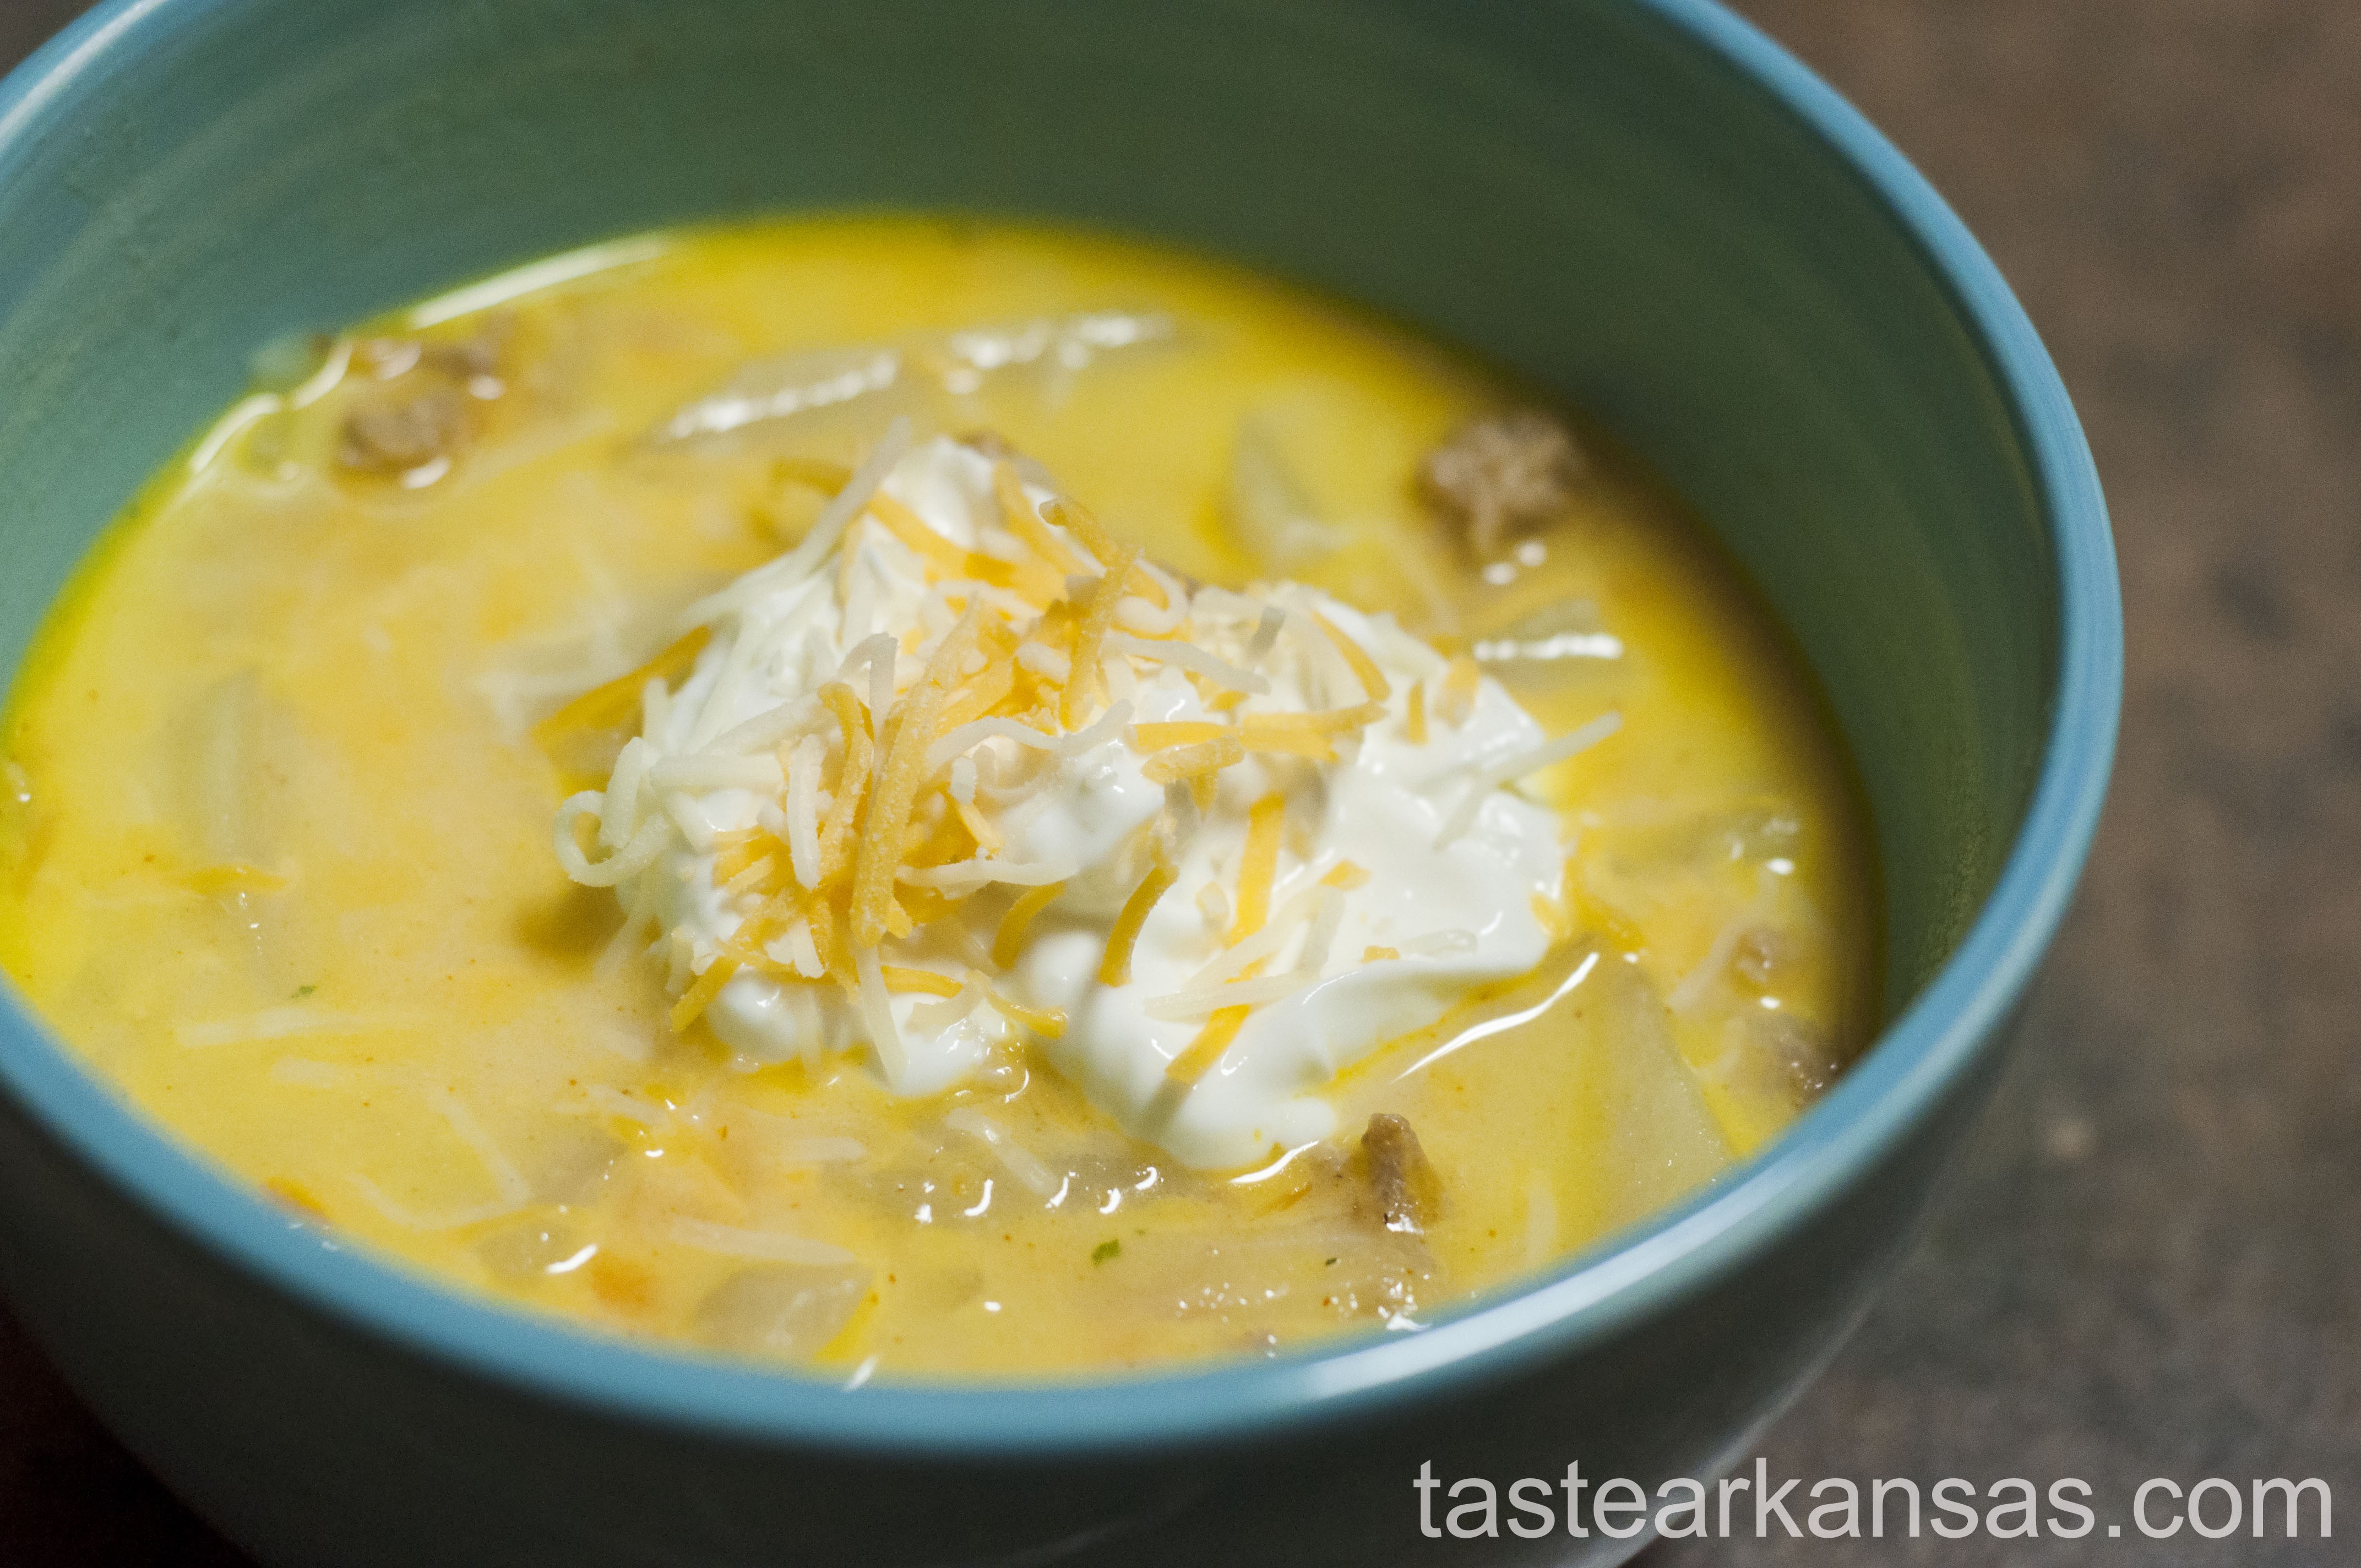 this picture is of a warm steamy bowl of turkey cheeseburger soup